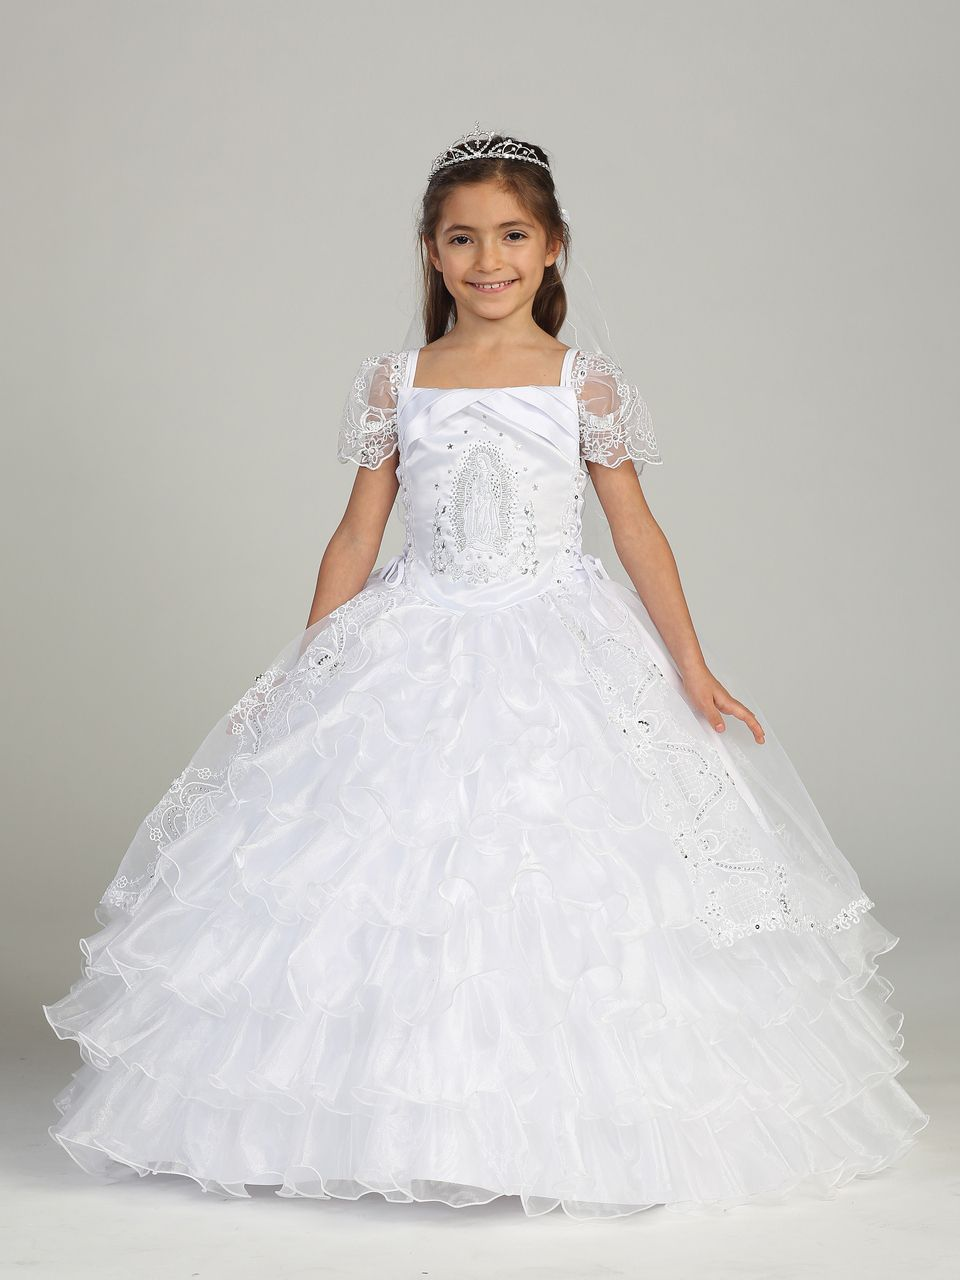 Communion Dress With Virgin Mary First Holy Communion White Gown Dresses Girls Dresses Christening Gowns [ 1280 x 960 Pixel ]